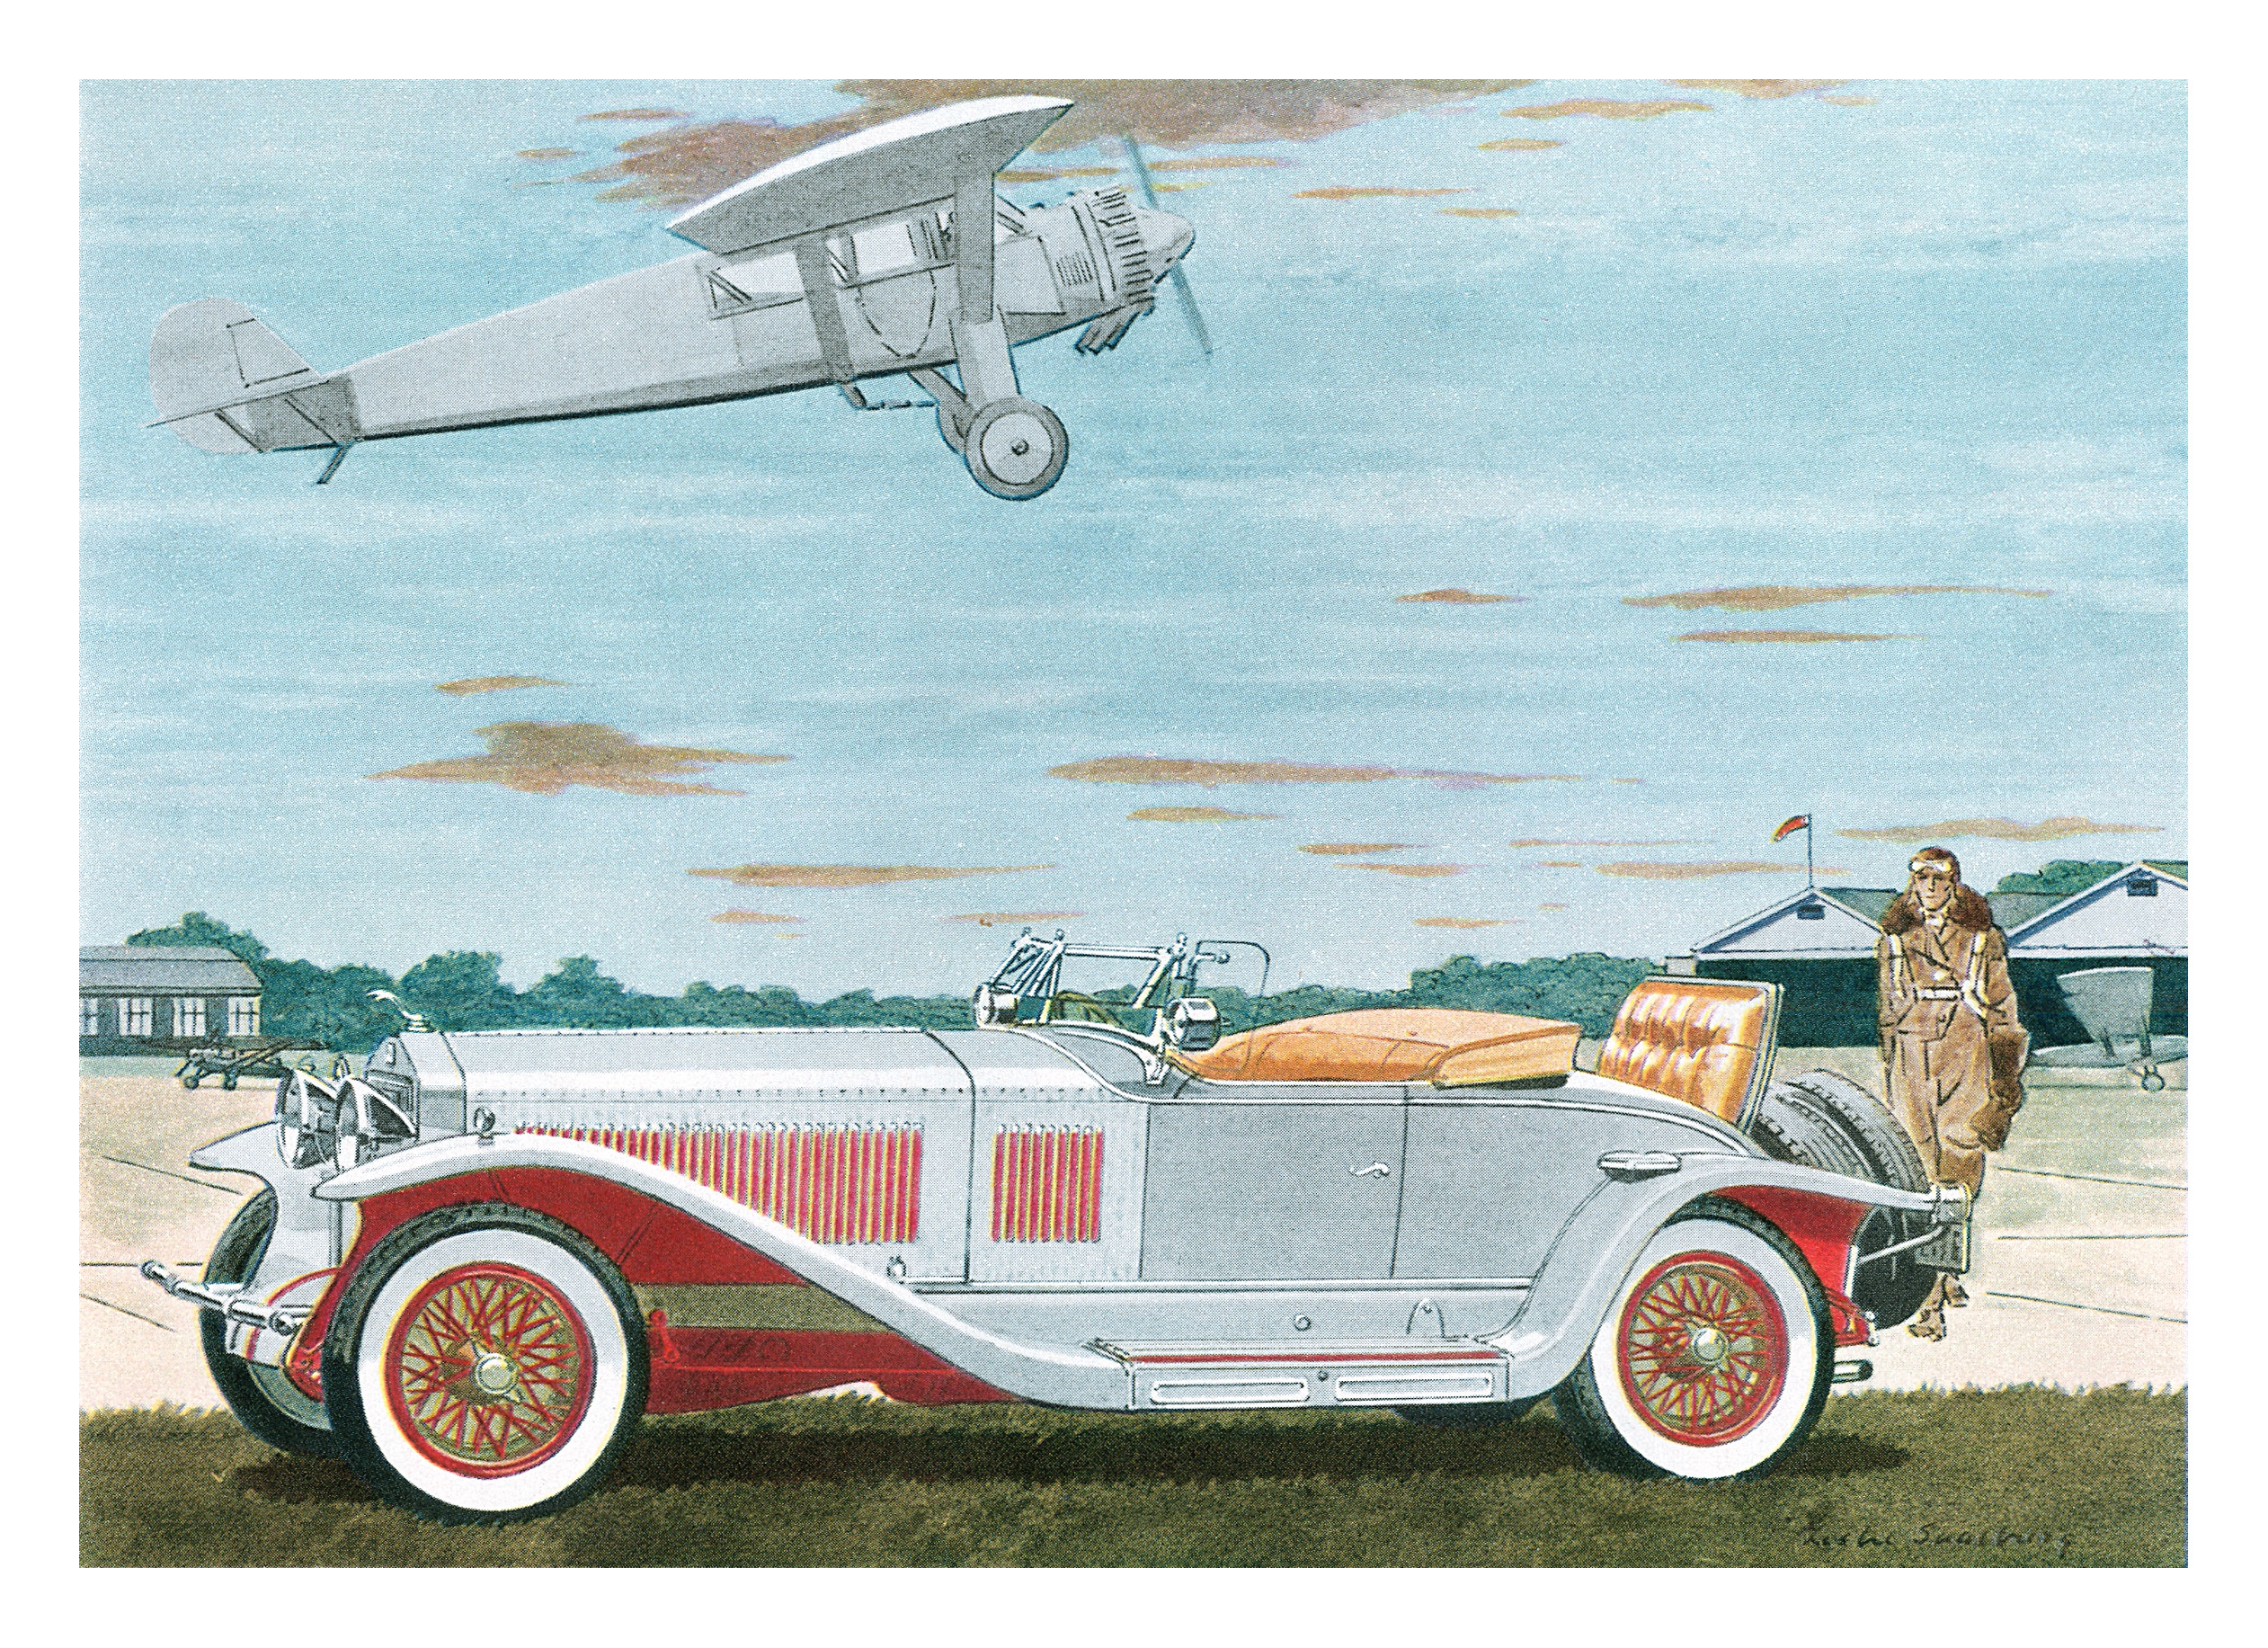 1927 Isotta Fraschini Roadster - Illustrated by Leslie Saalburg